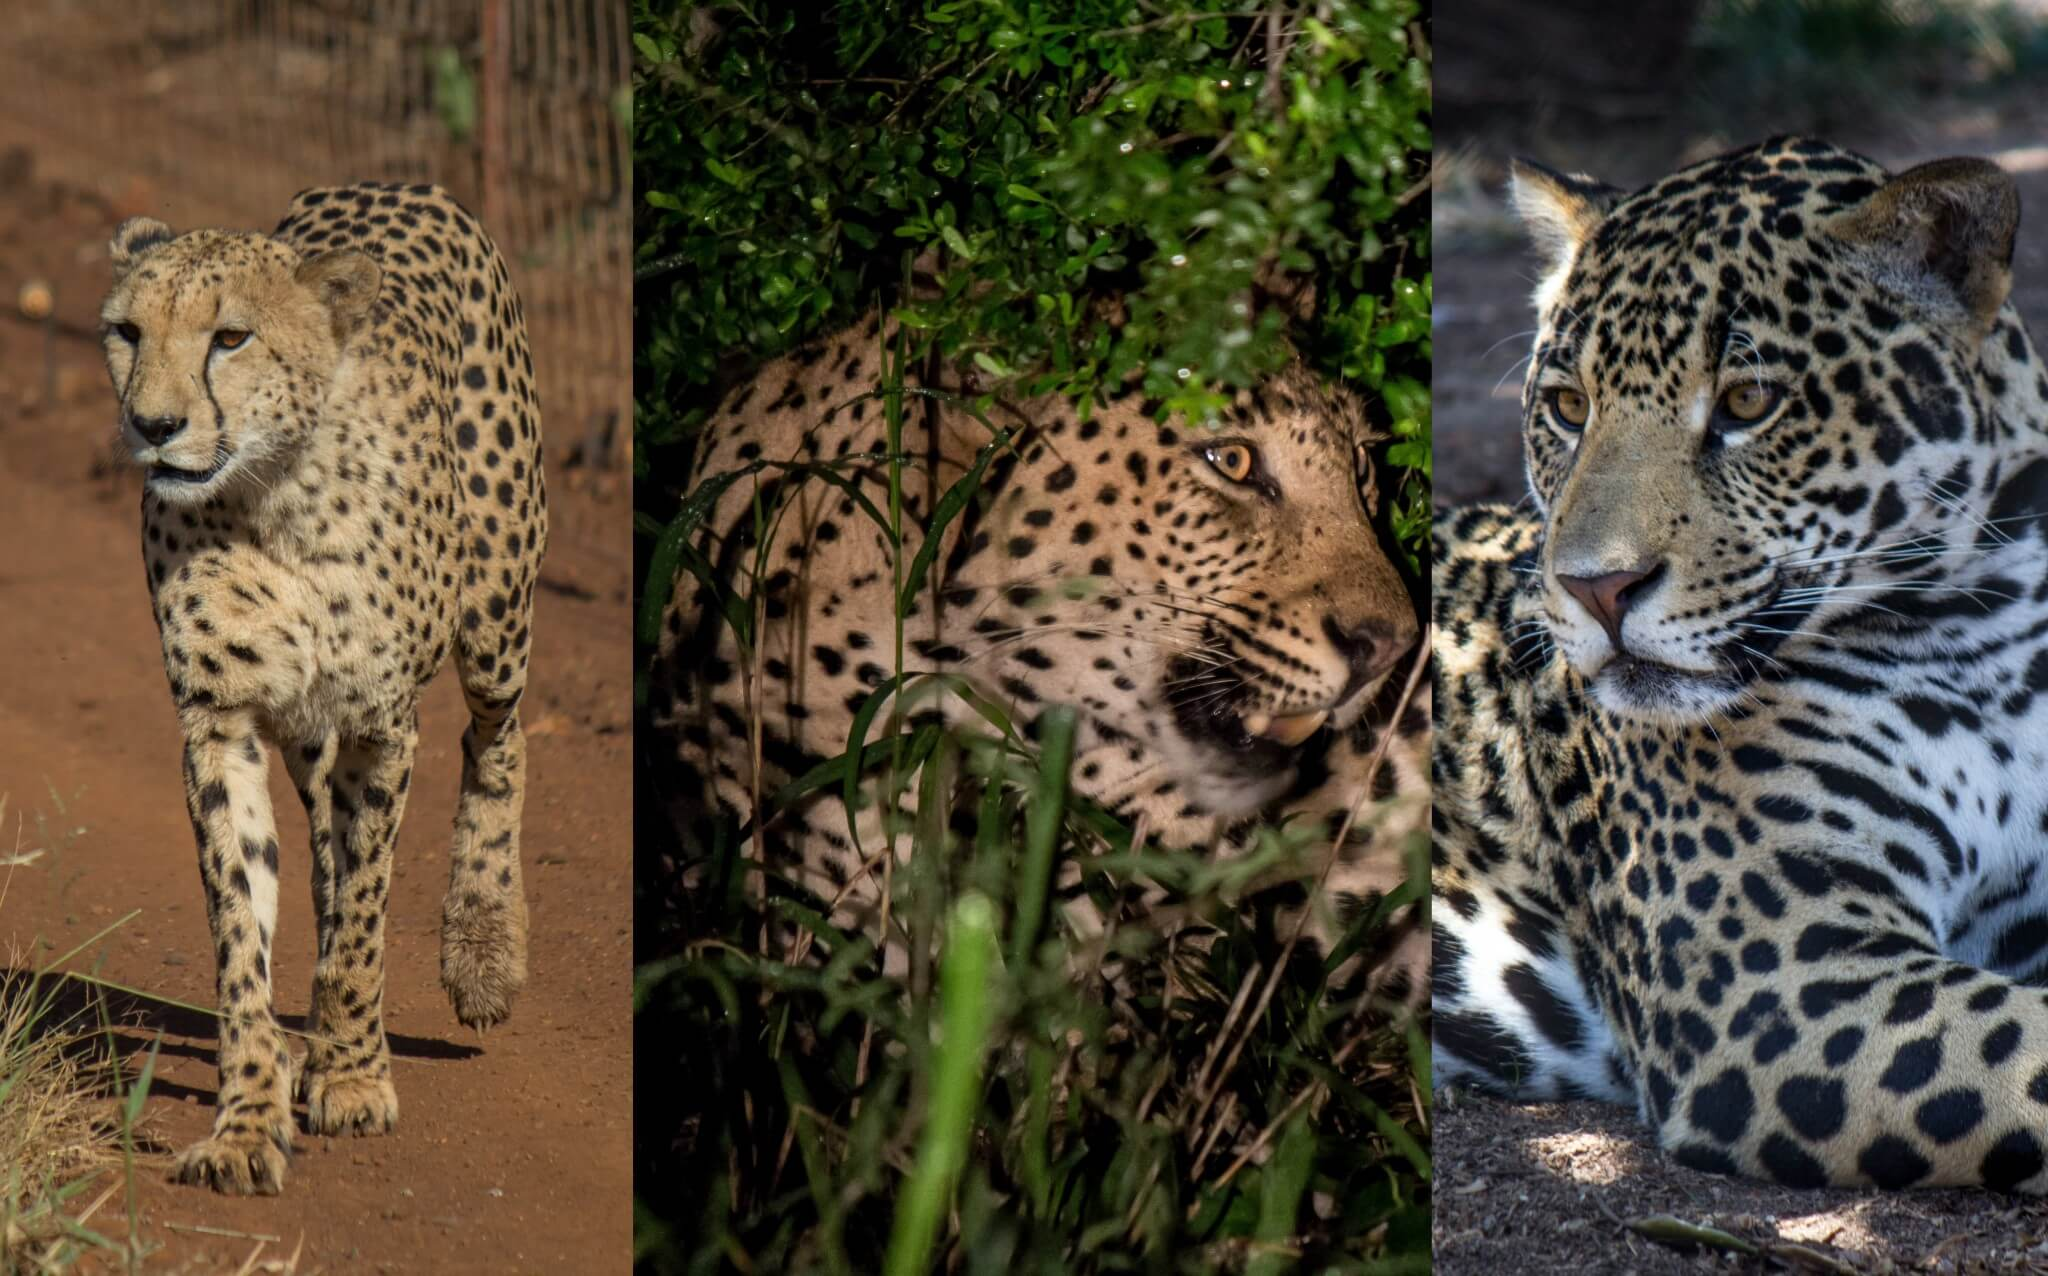 Large Spotted Cats - Cheetah, Leopard, Jaguar